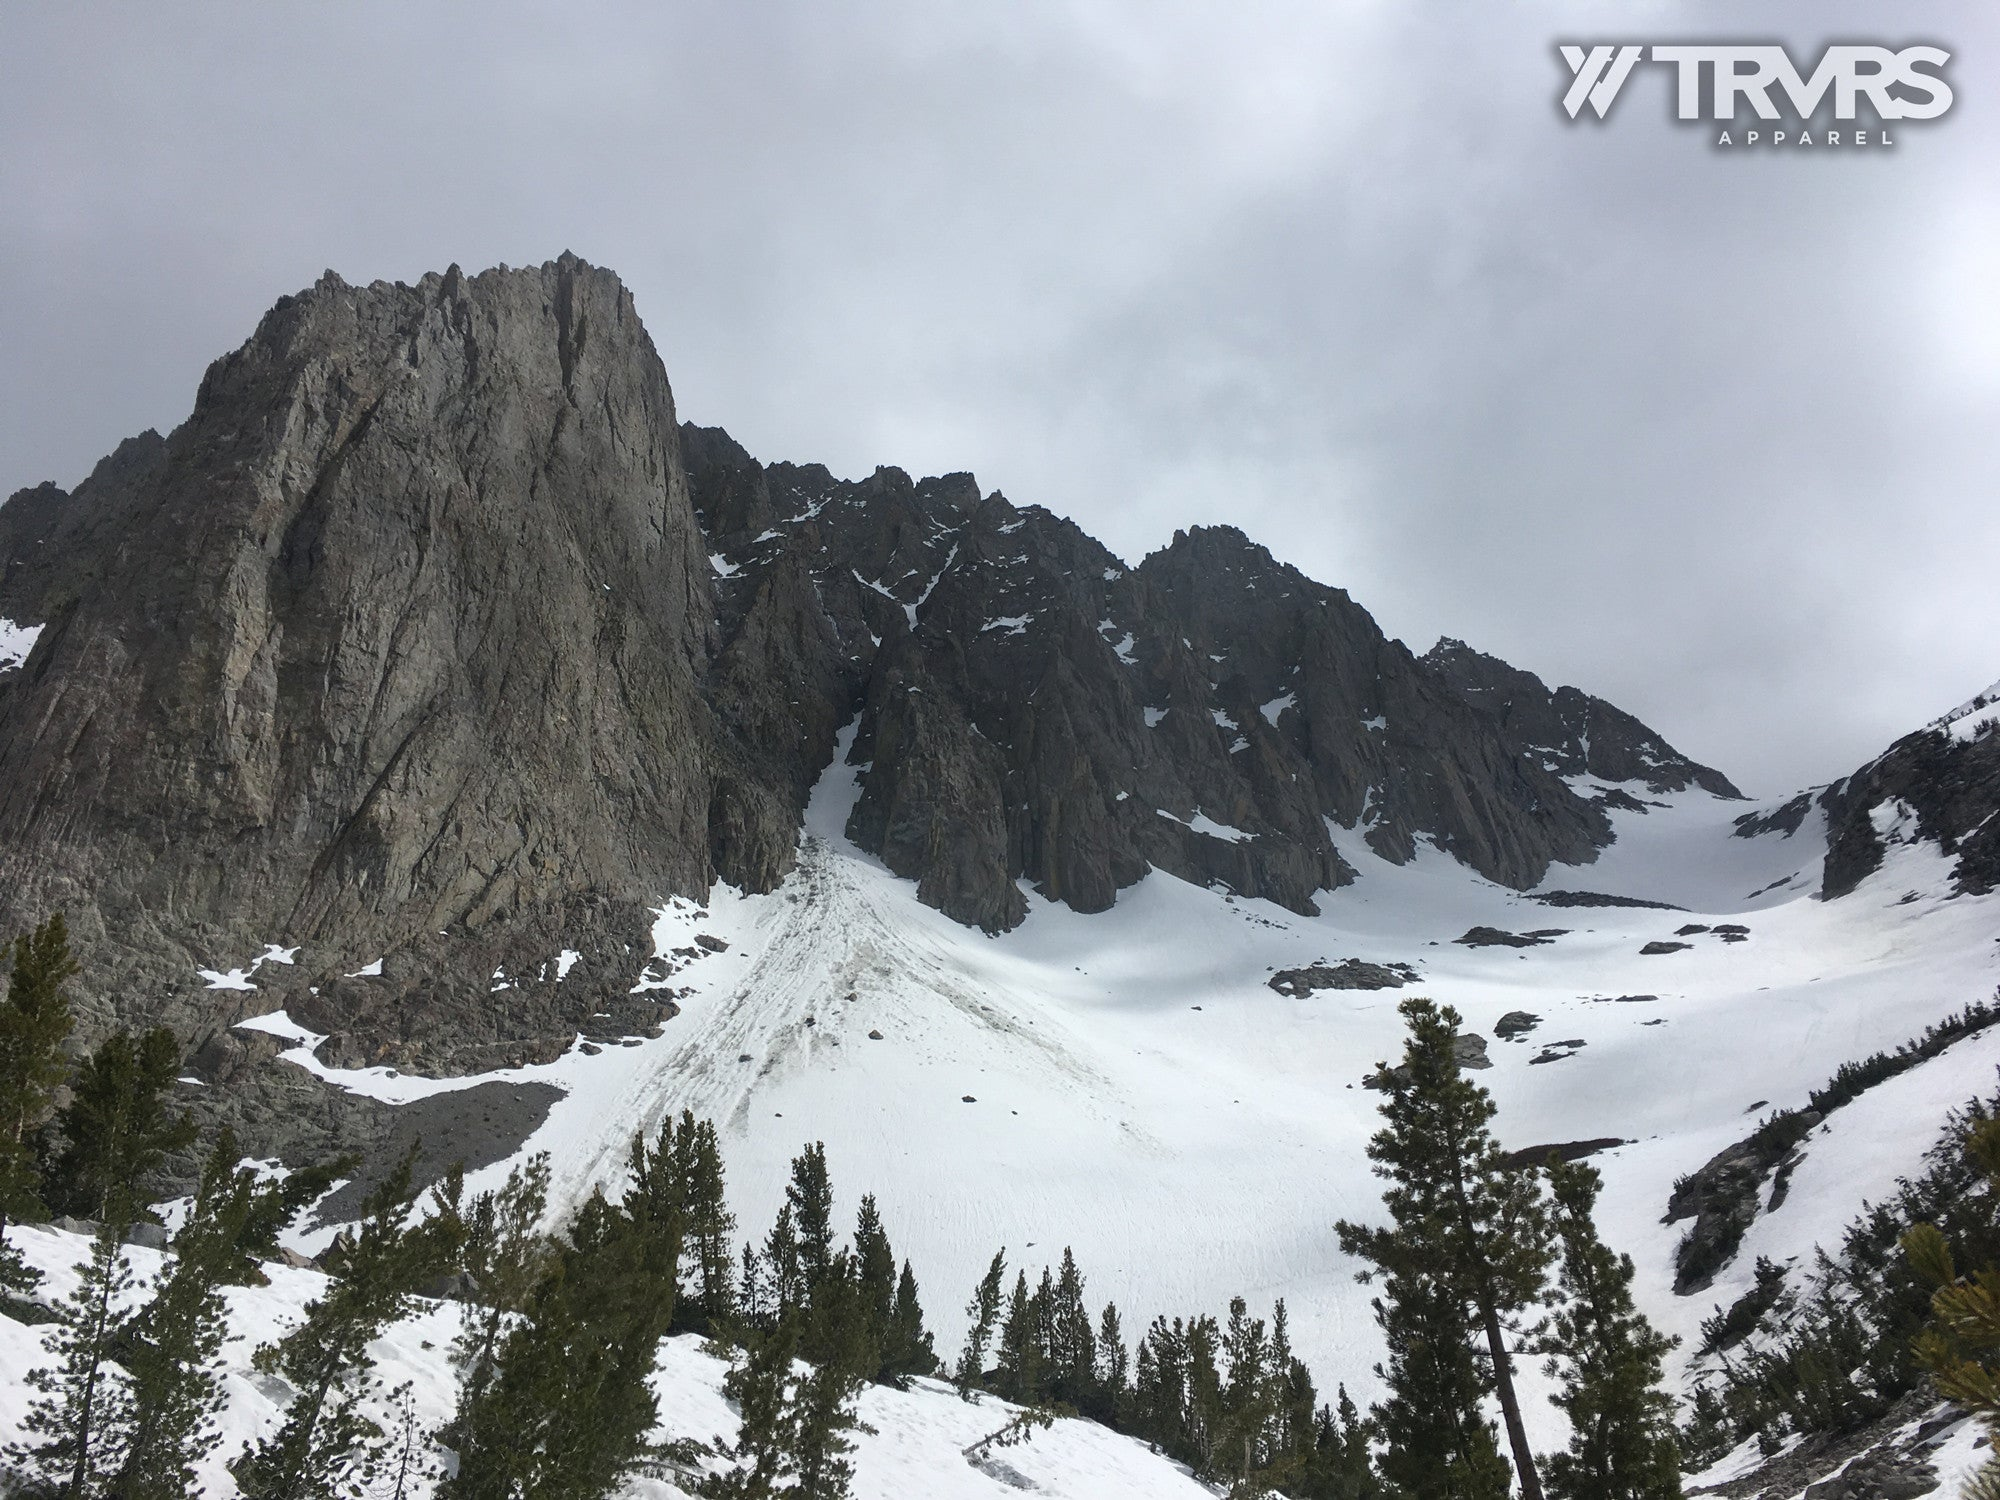 Snowy Slope Below Temple Crag from Third Lake | TRVRS APPAREL